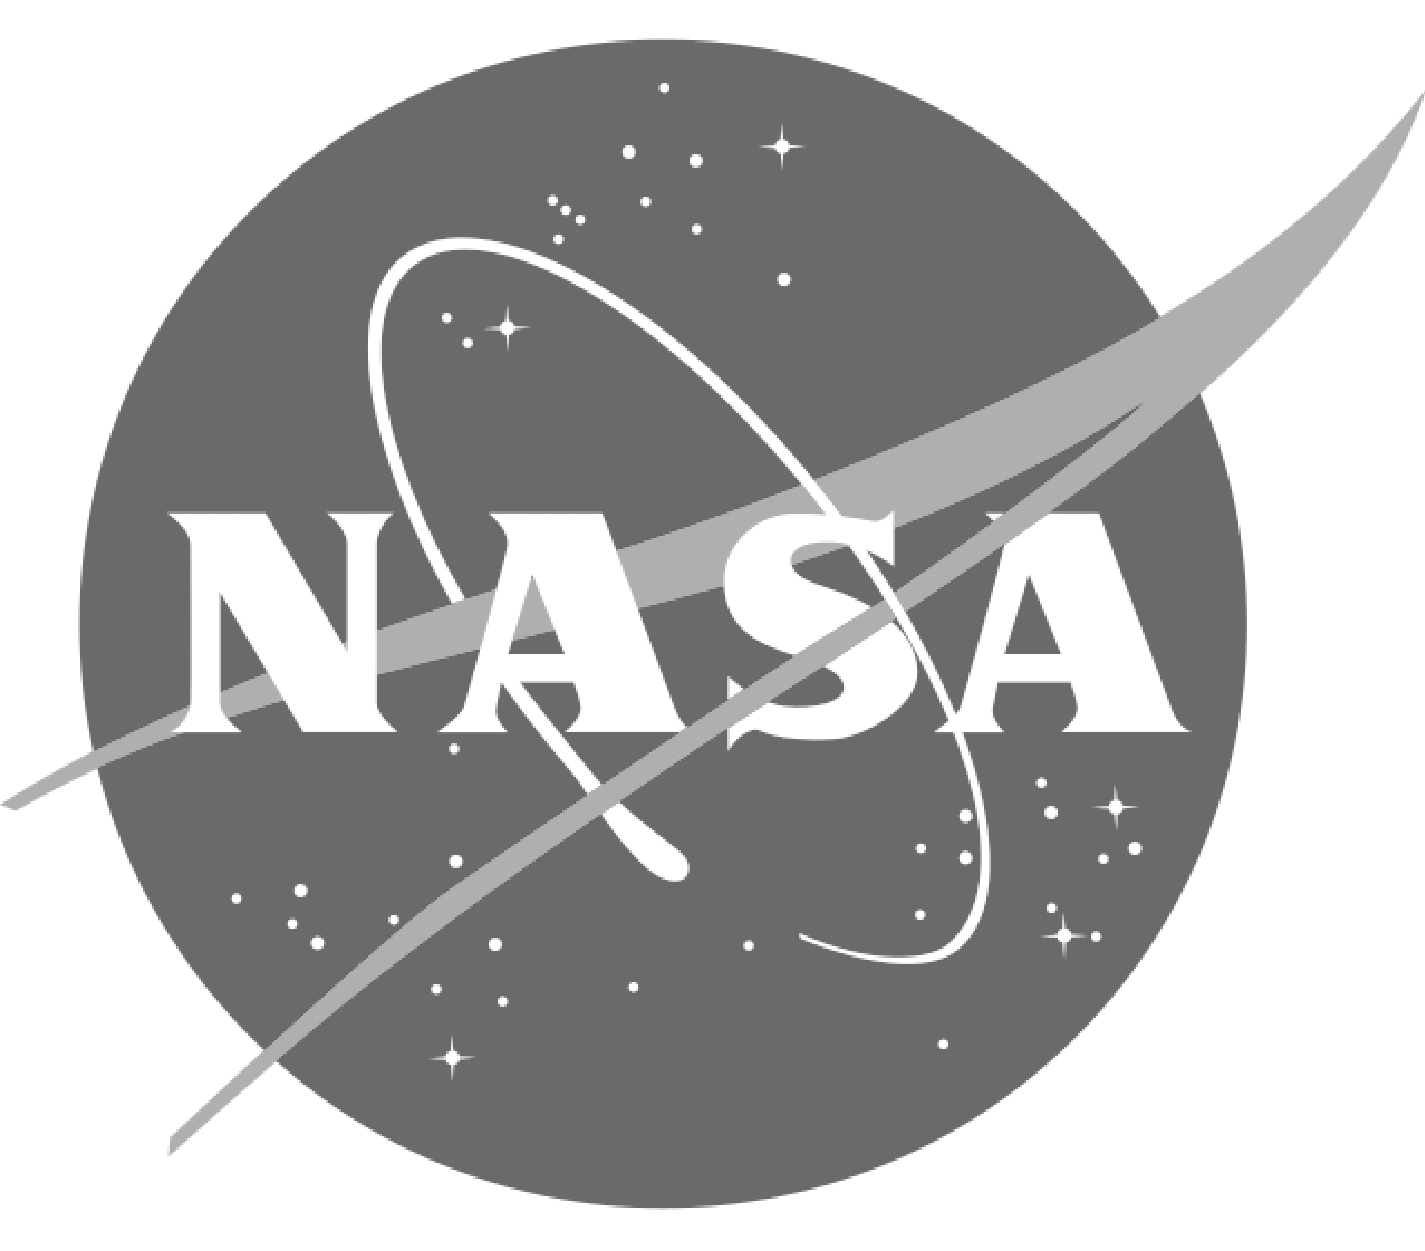 The logo of NASA JPL